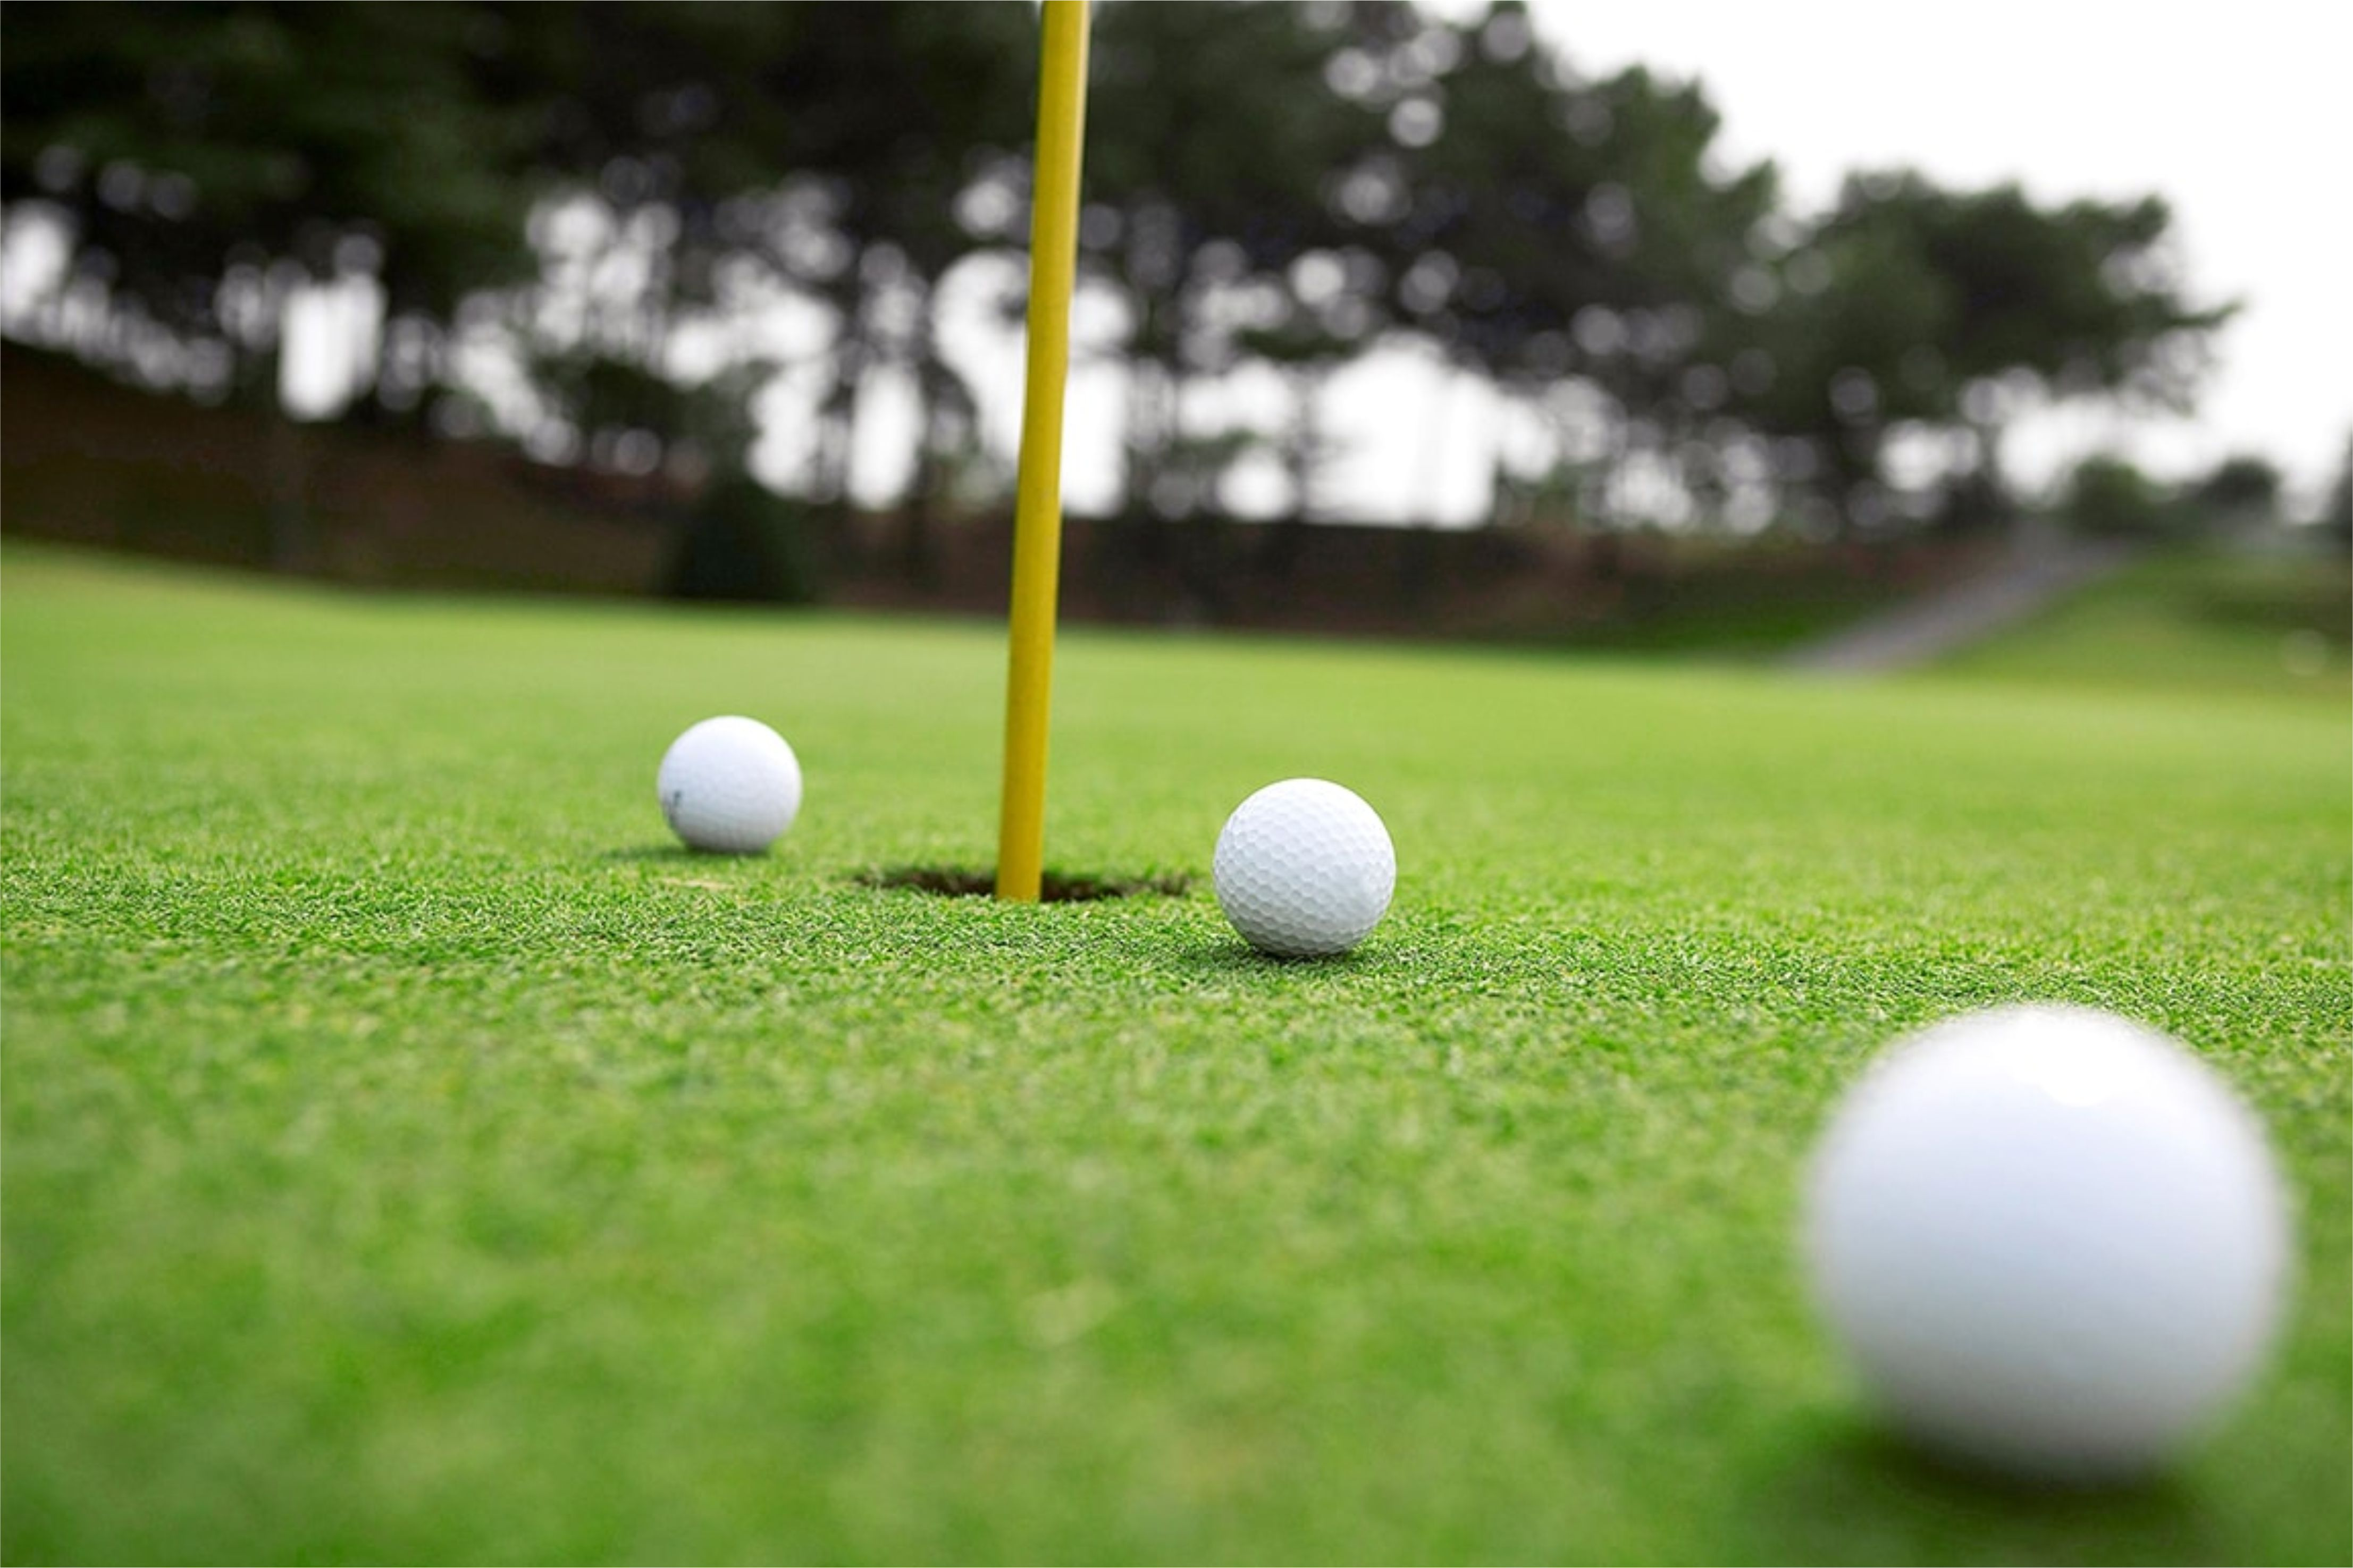 3 golf balls round about flag hole golf meadow grass lawn